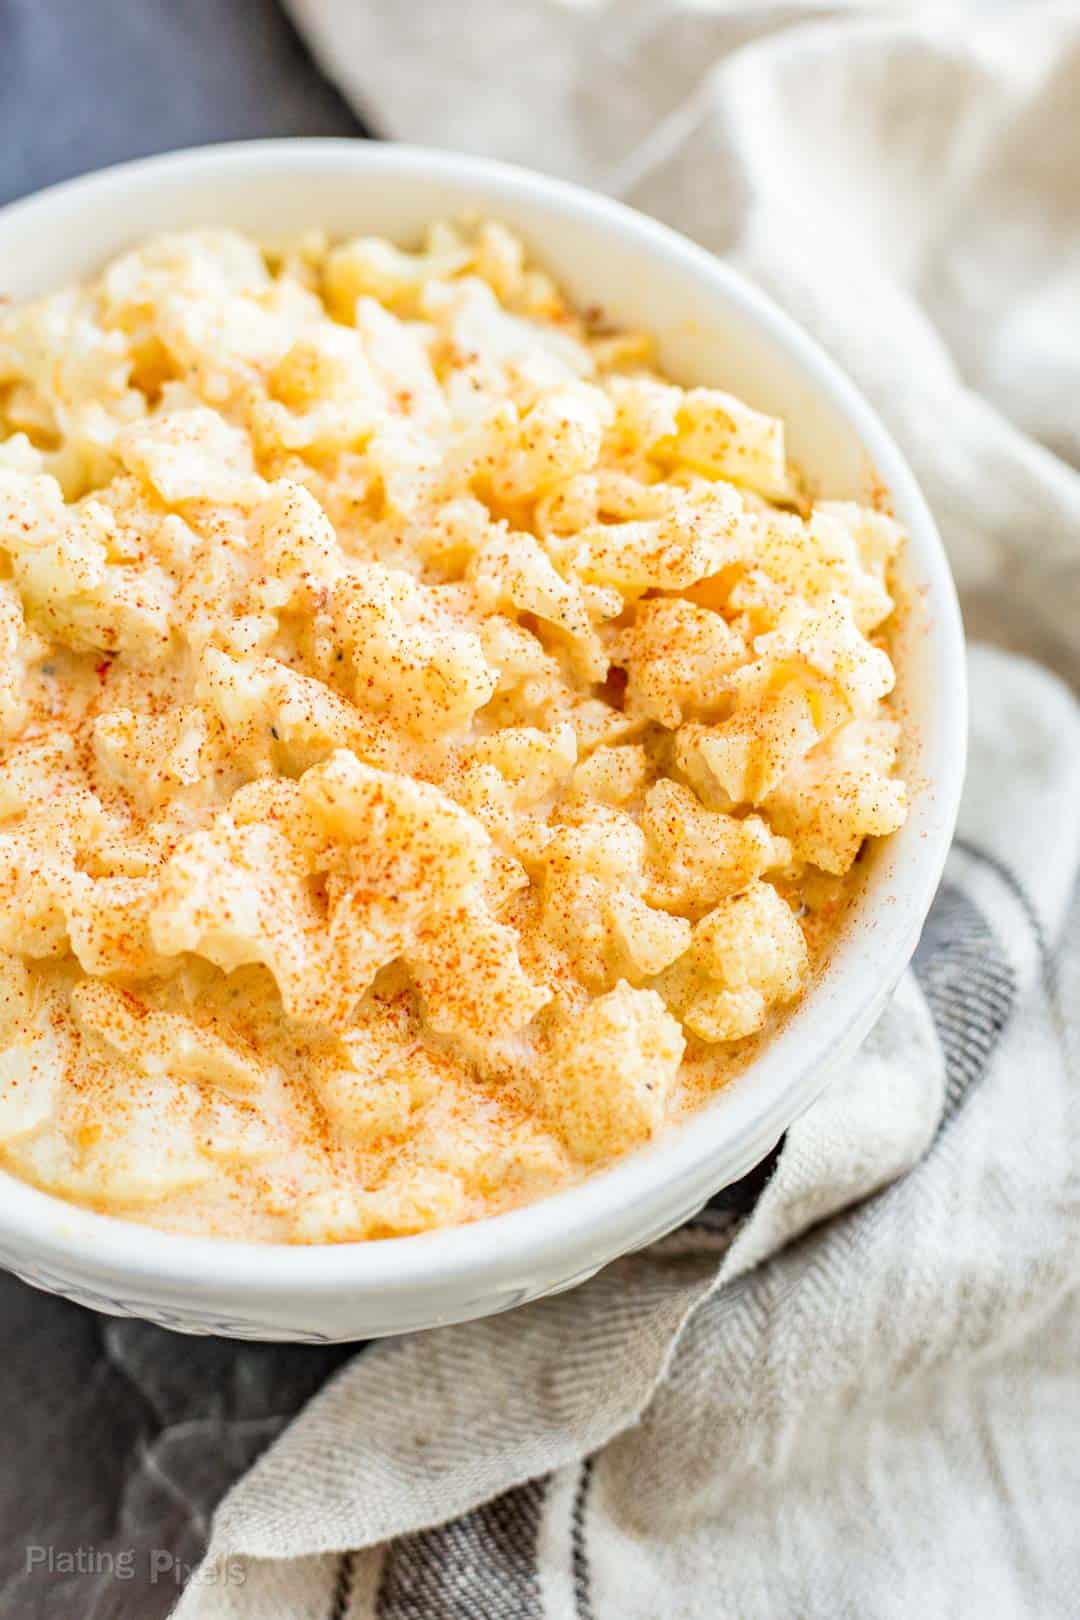 Keto Cauliflower Mac and Cheese garnished with paprika